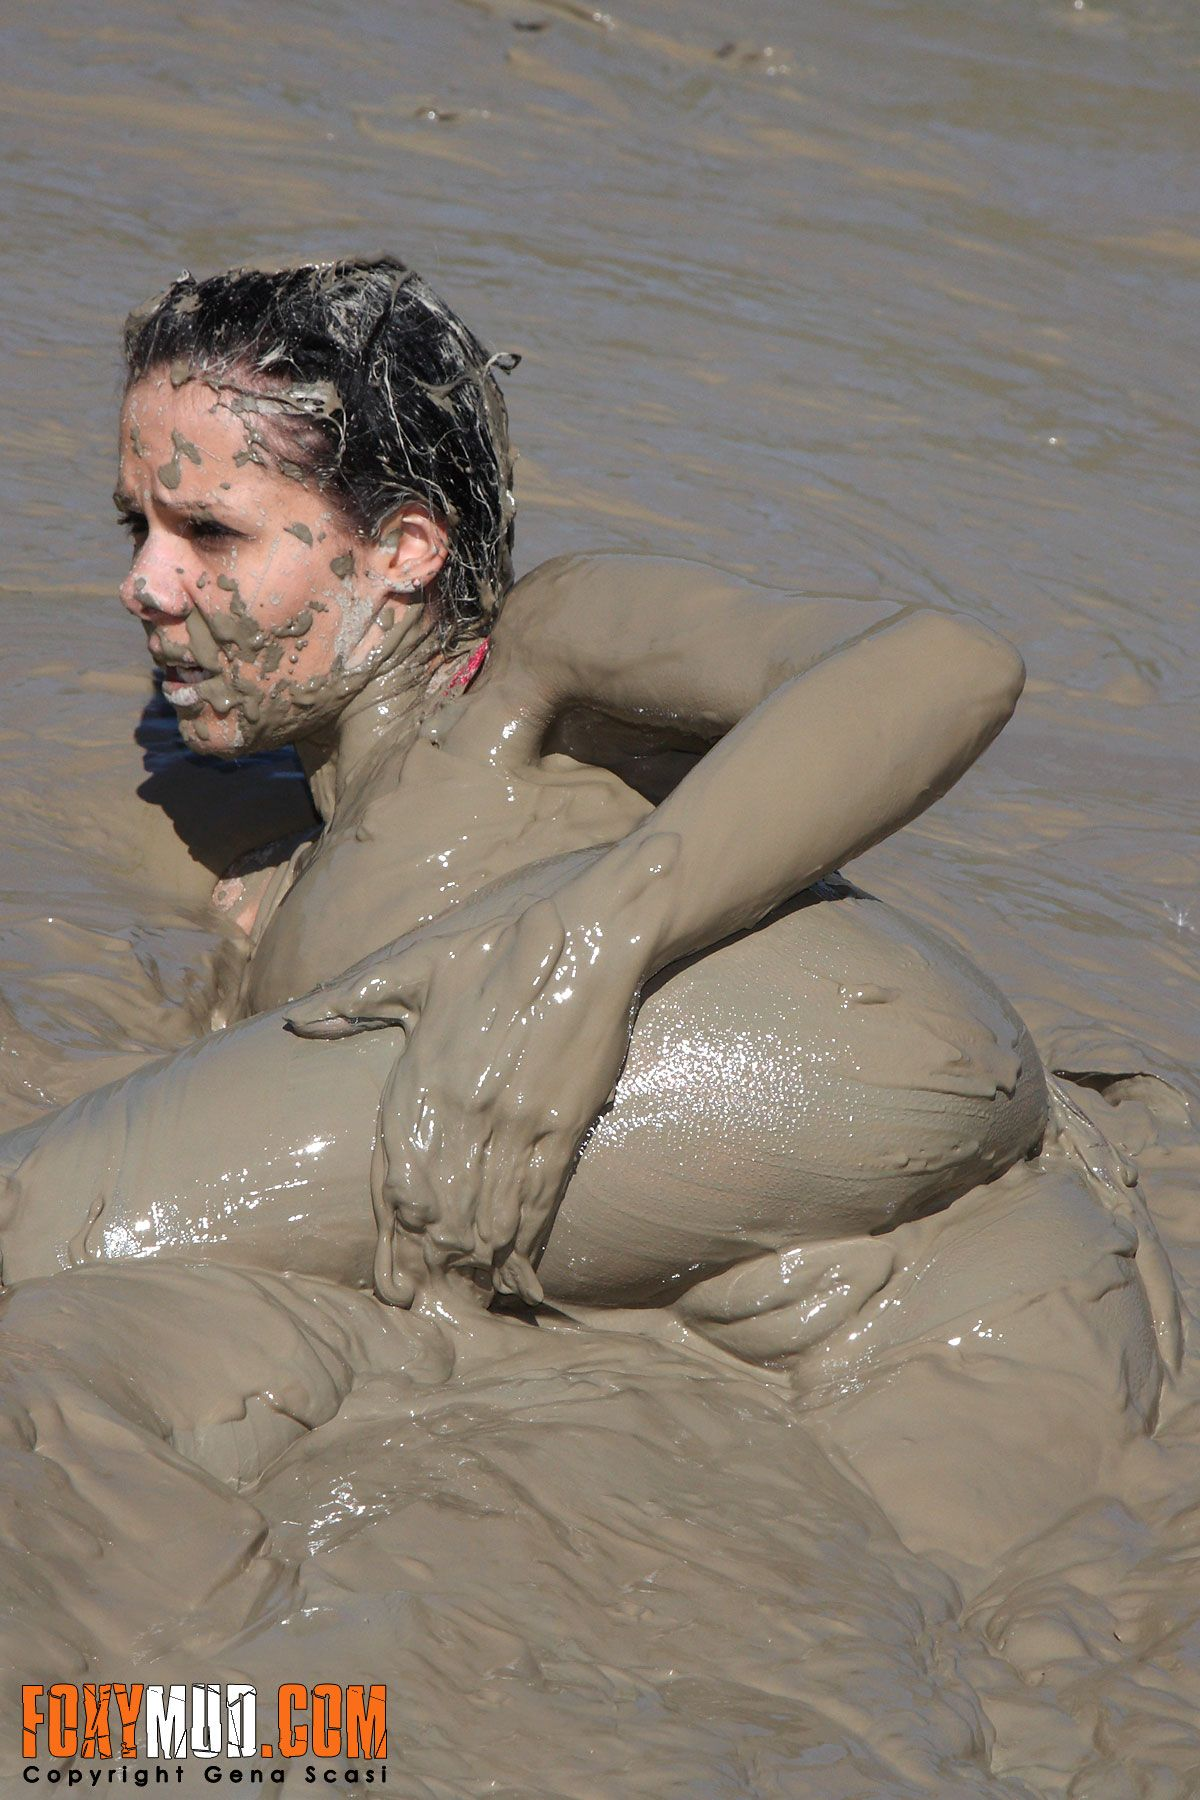 The expert, Naked girl in mud